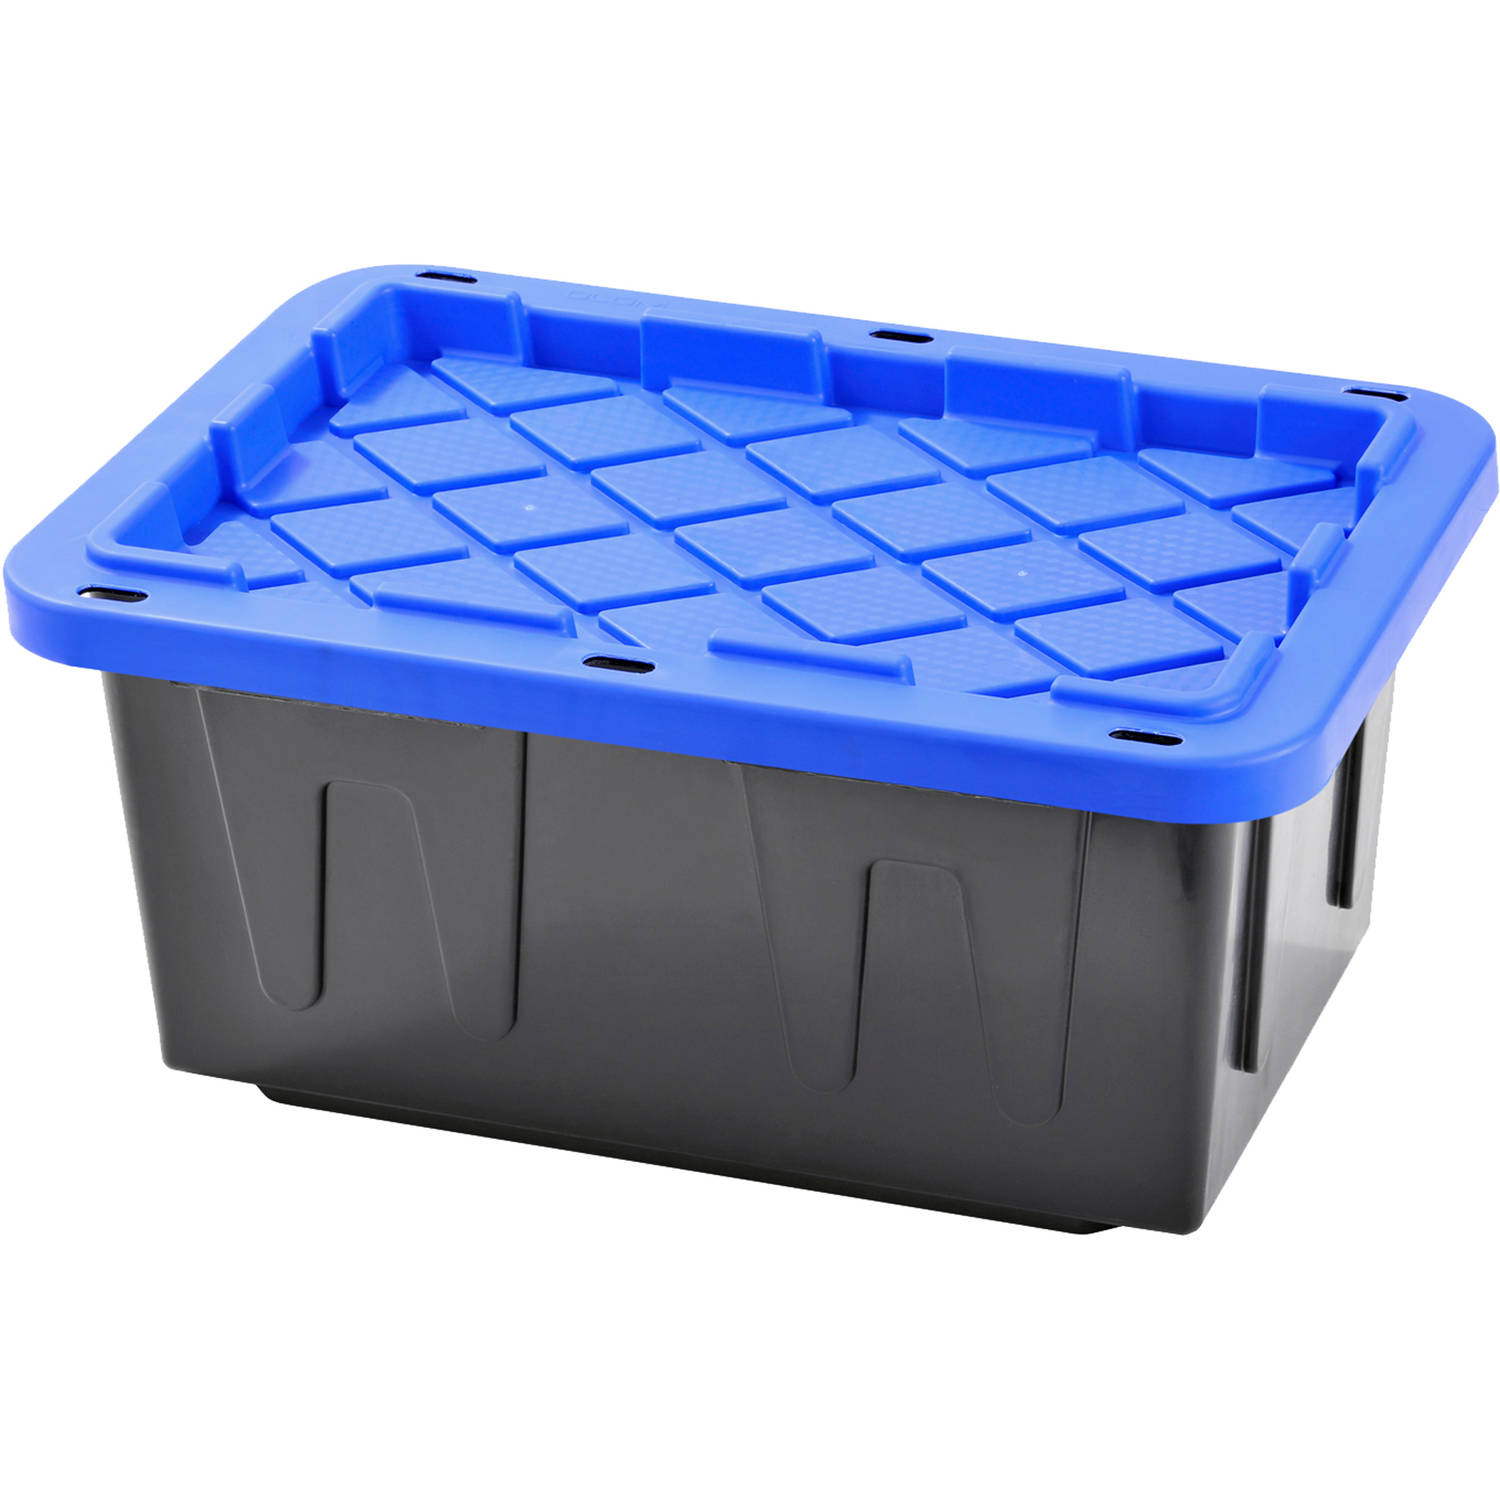 Plastic Heavy Duty Storage Tote Box, 15 Gallon, Black With Blue Snap Lid, Stackable, 4-Pack